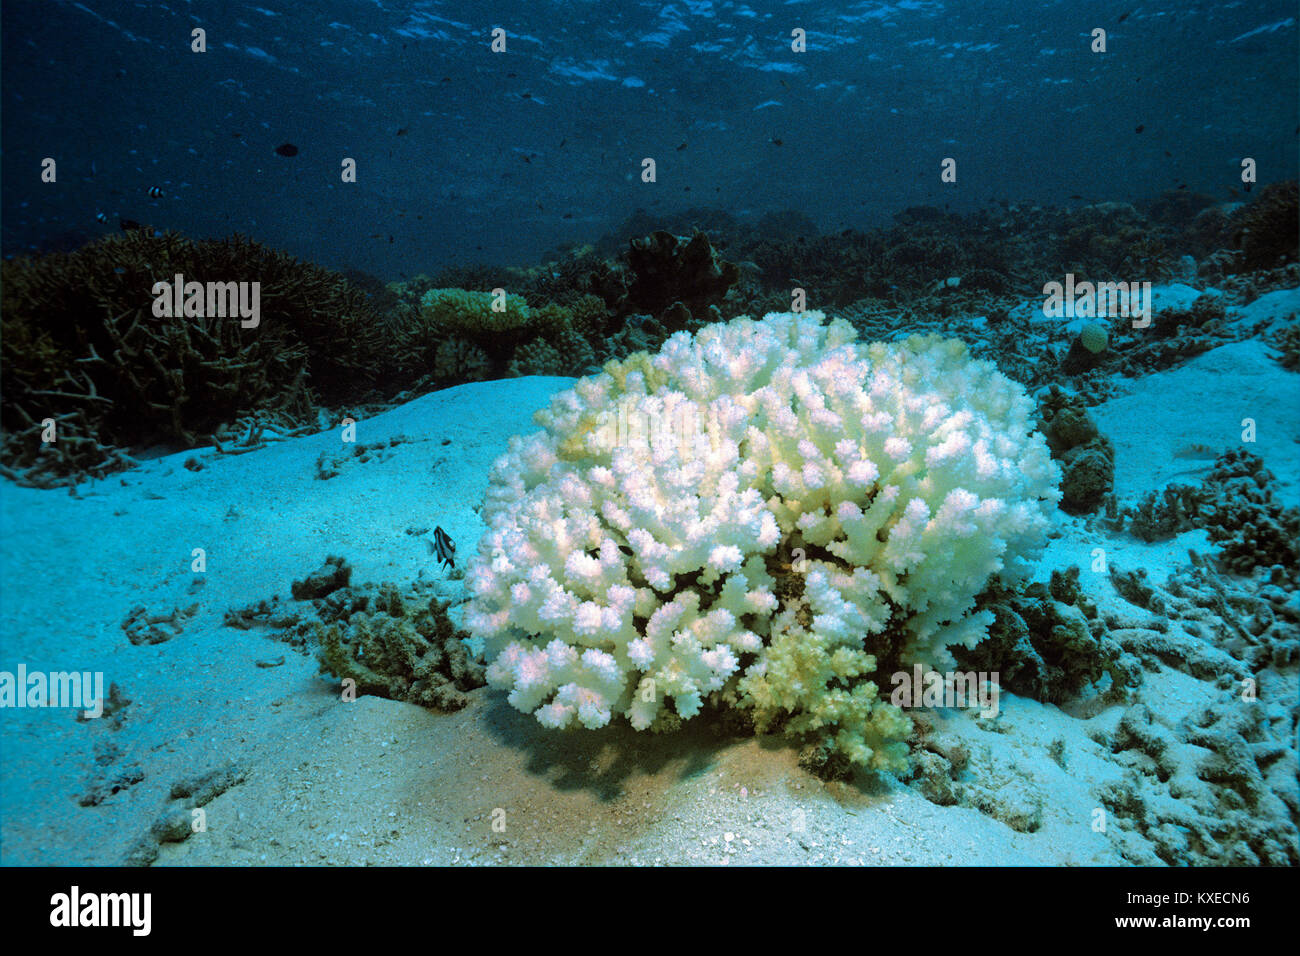 Bleached stone coral, coral bleaching, consequences of global warming, coral reef at Maldives islands, Indian ocean, - Stock Image